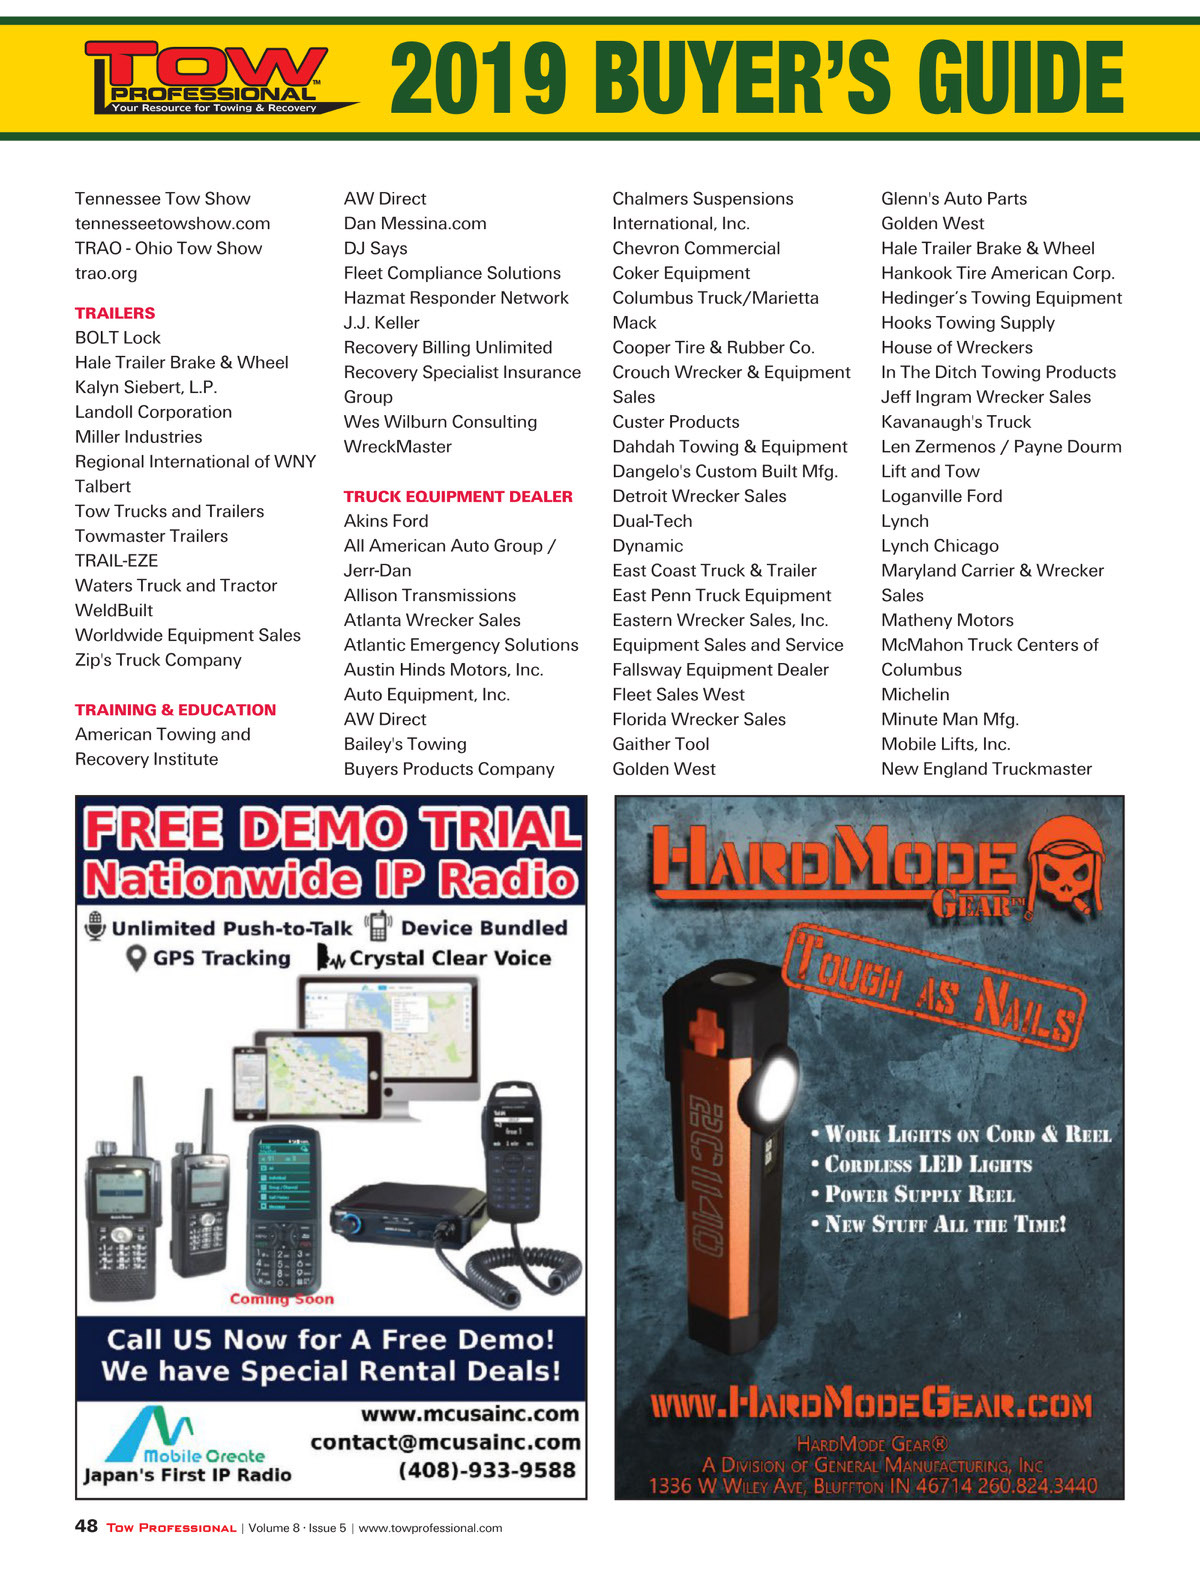 Tow Professional Volume 8 Issue 5 Advance auto parts is your source for quality auto parts, advice and accessories. xdigital spiweb com